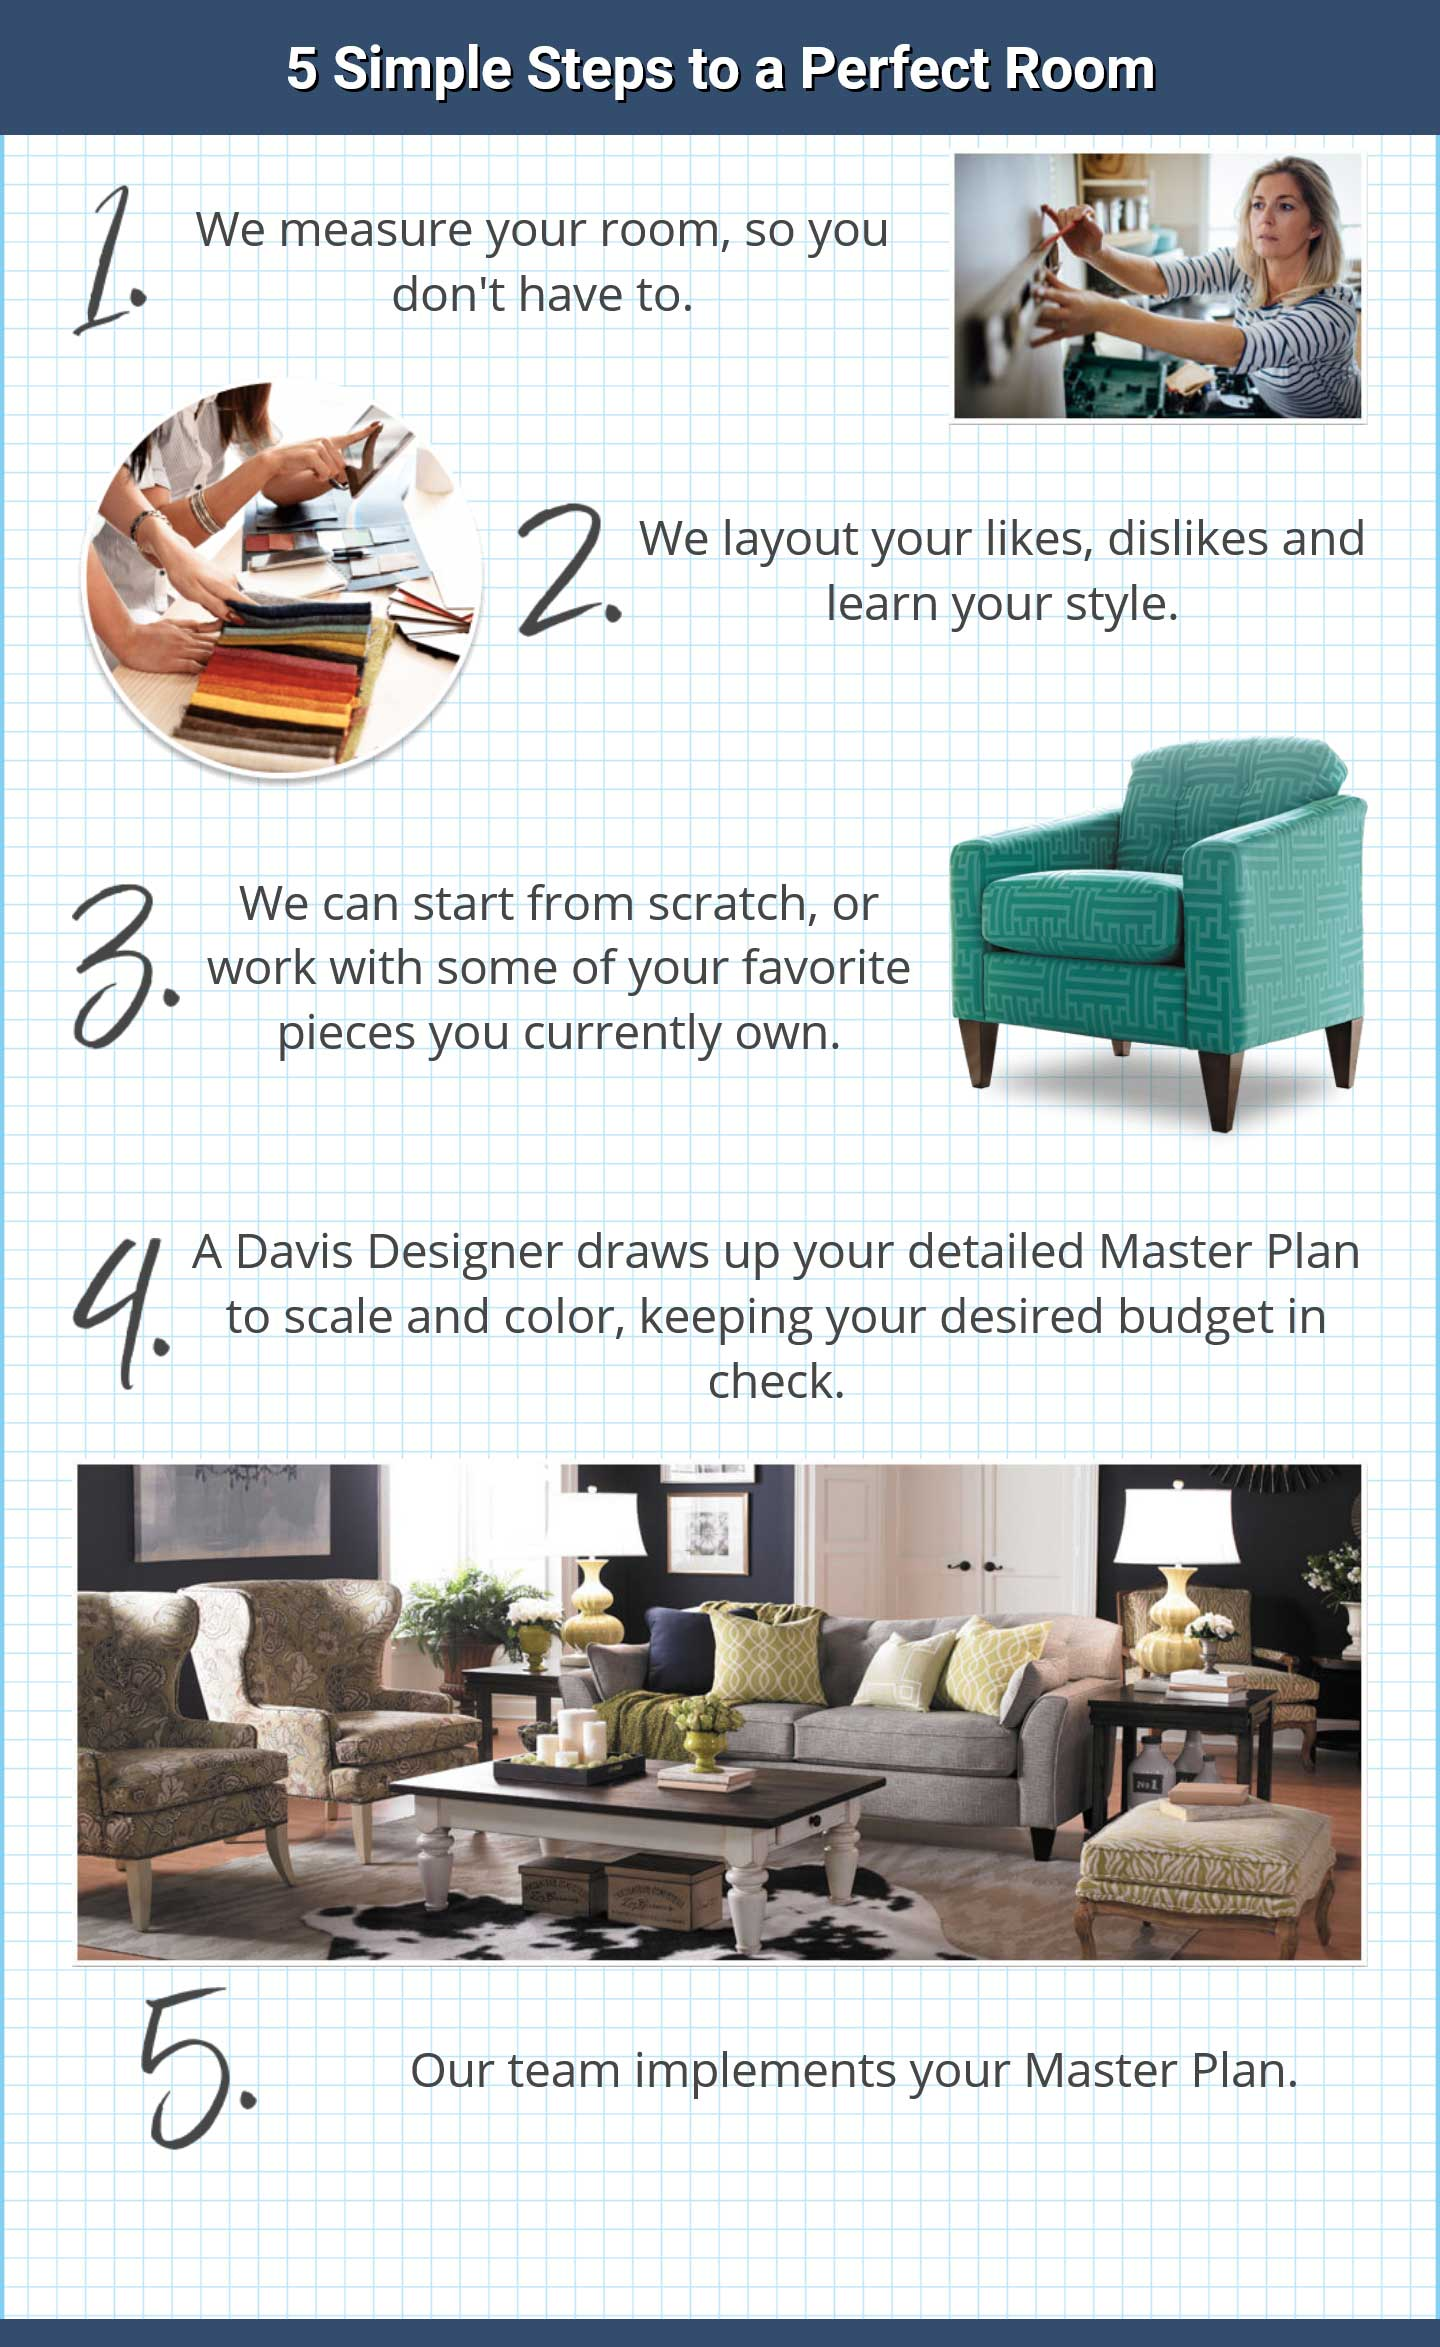 5 Simple Steps to a Perfect Room